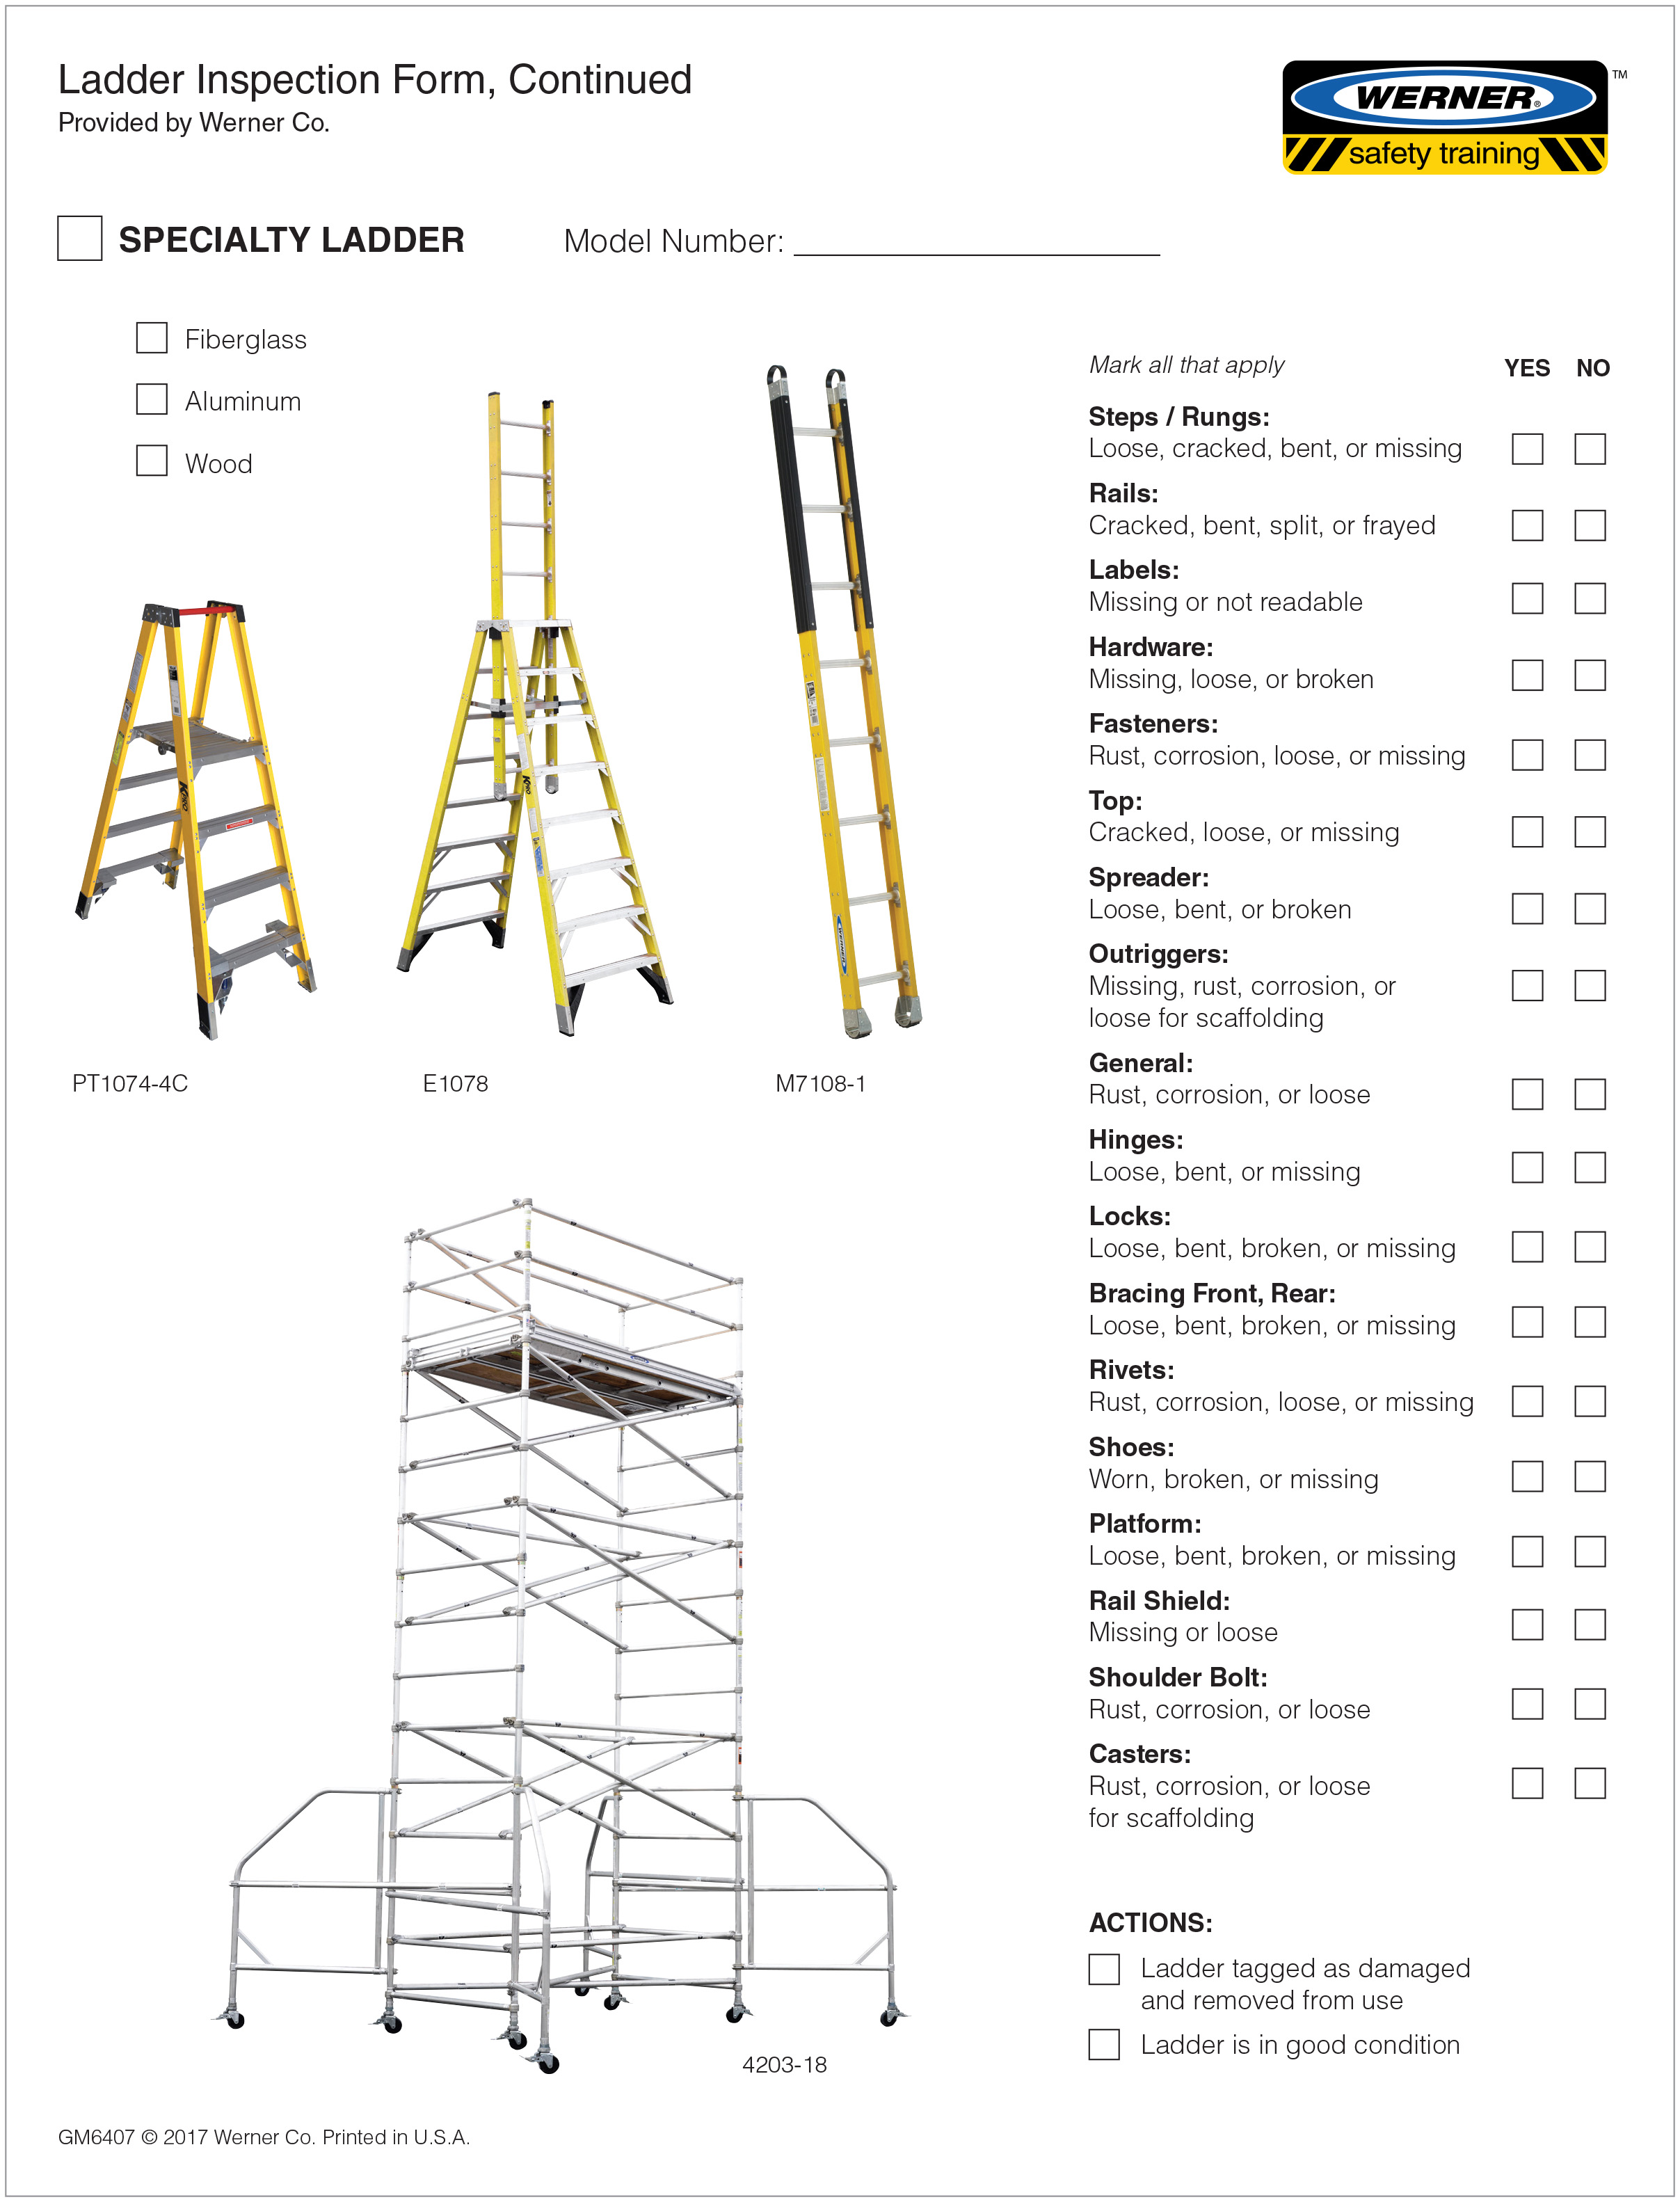 Ladder Safety Inspection Checklist Template Topsimages